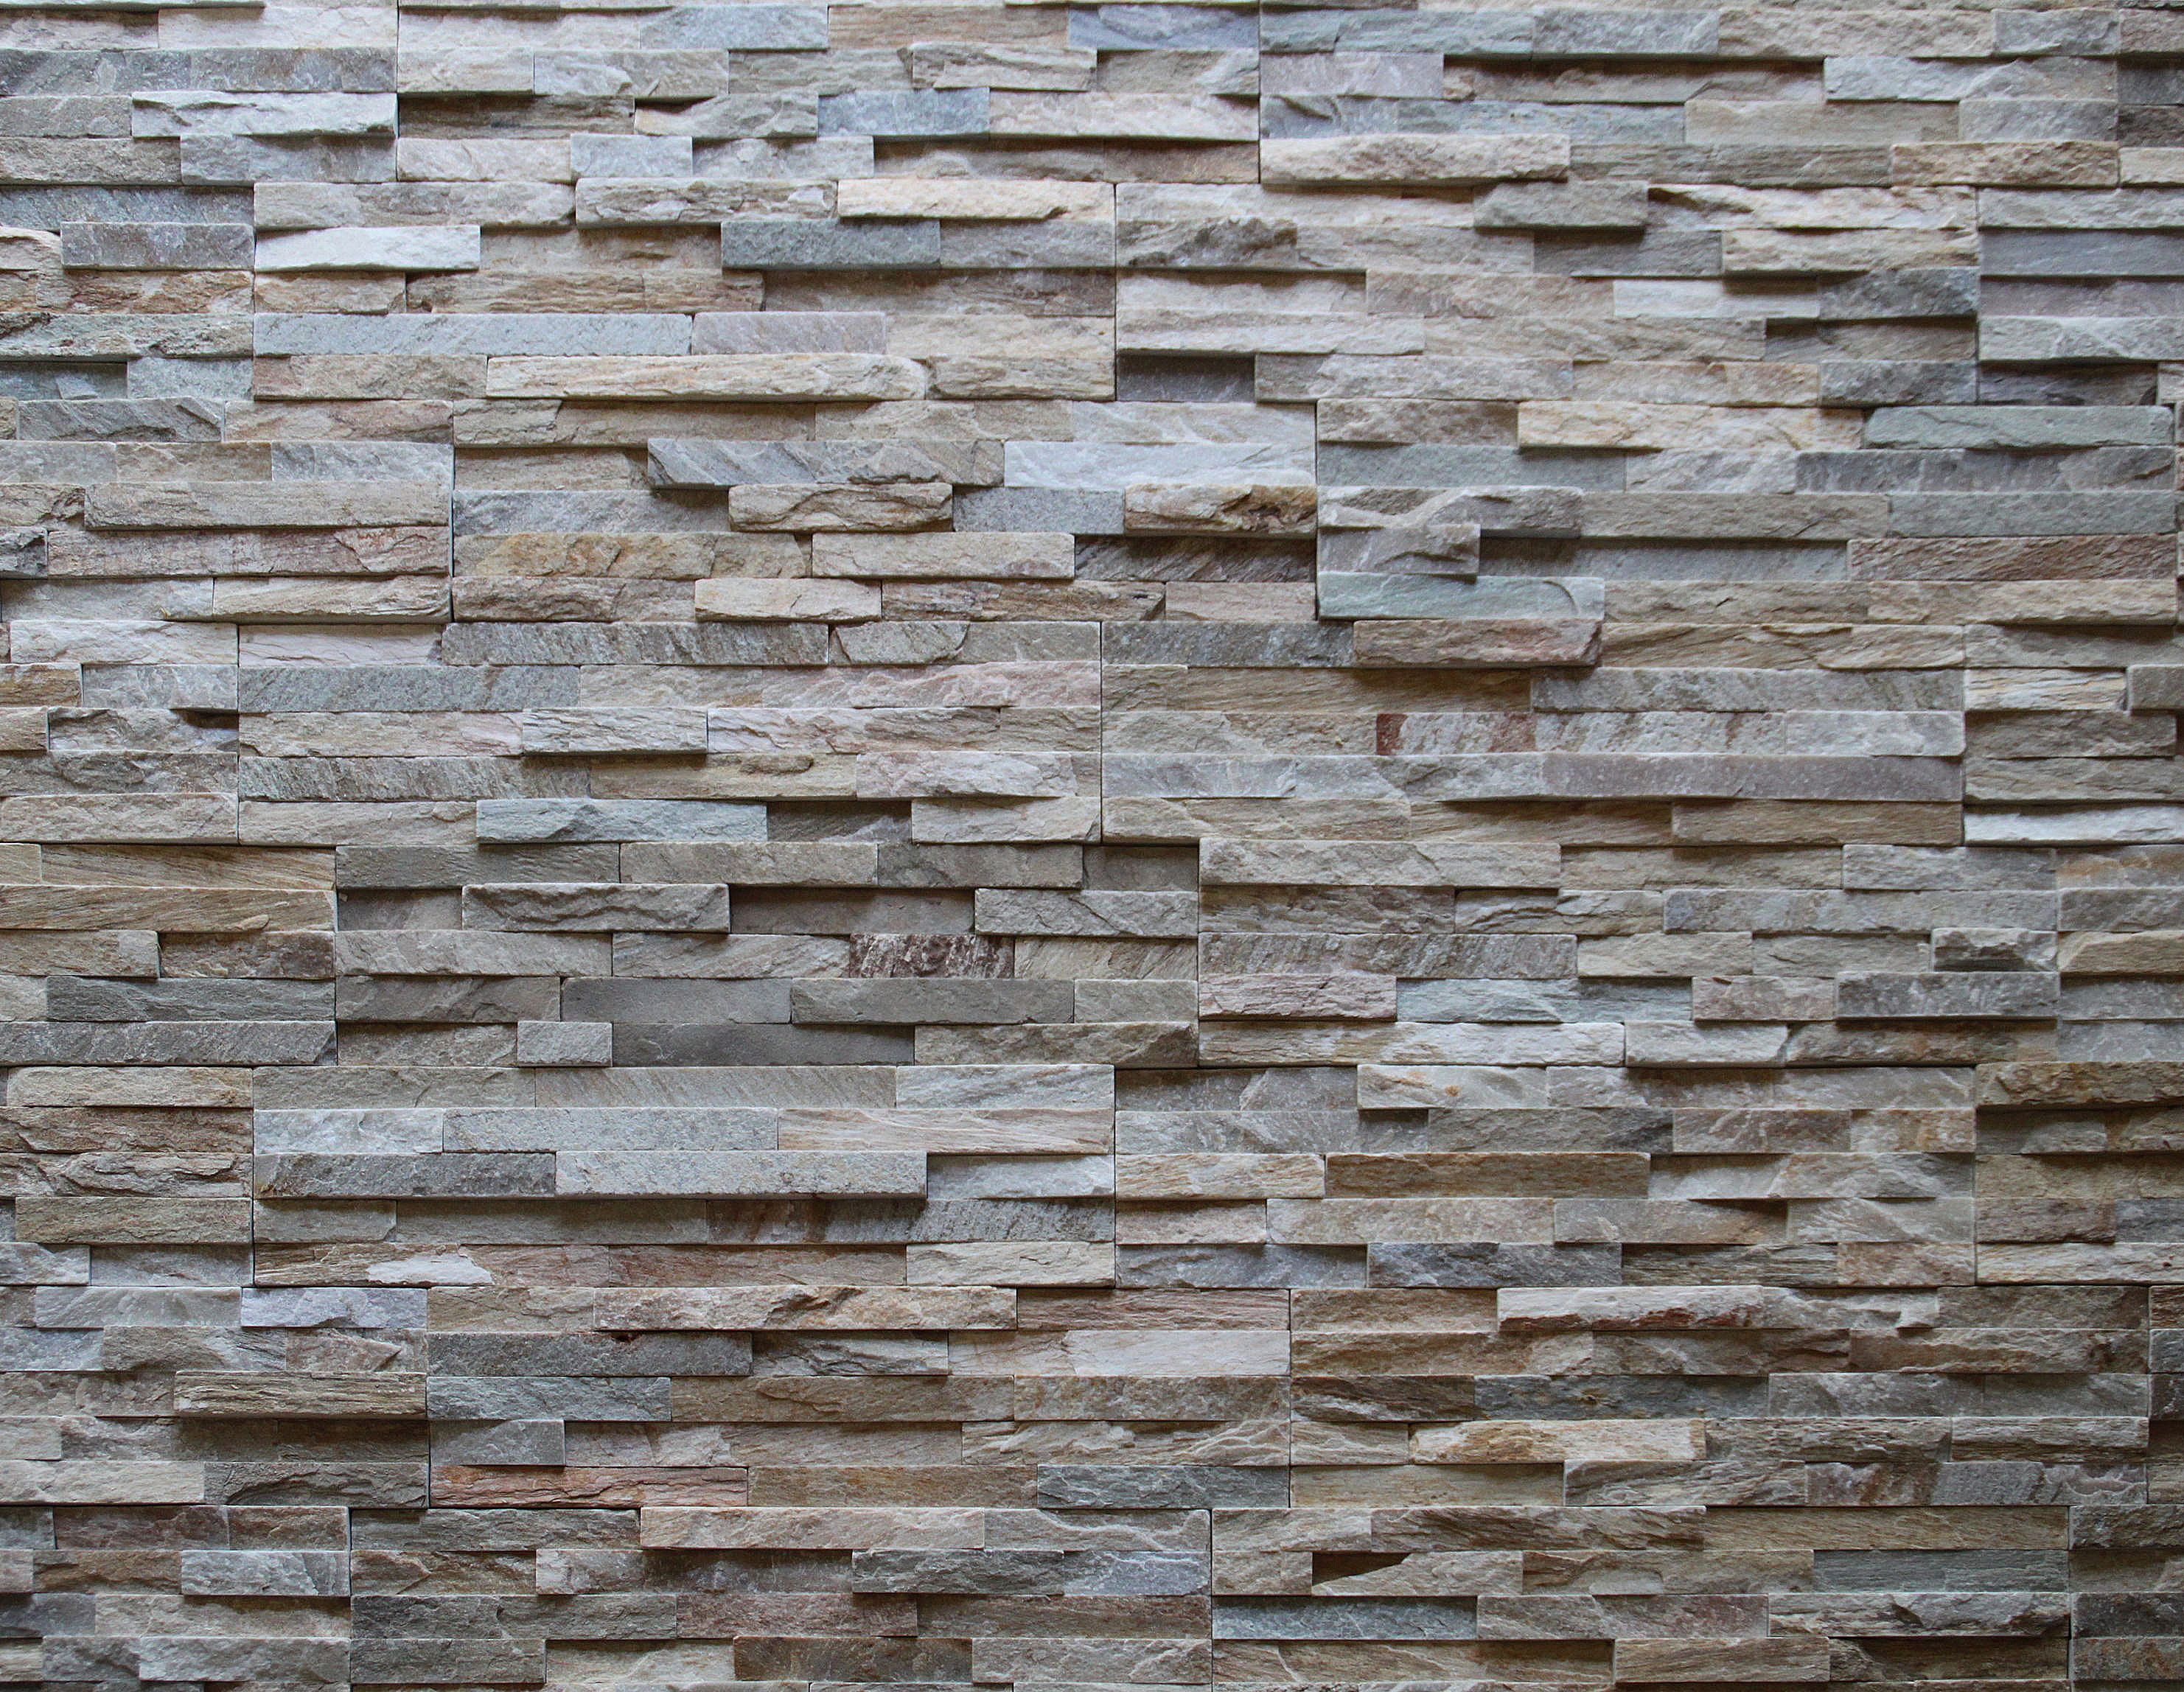 remodel ideas basement decor panels stone for fence panel interior decoration wall faux fireplace